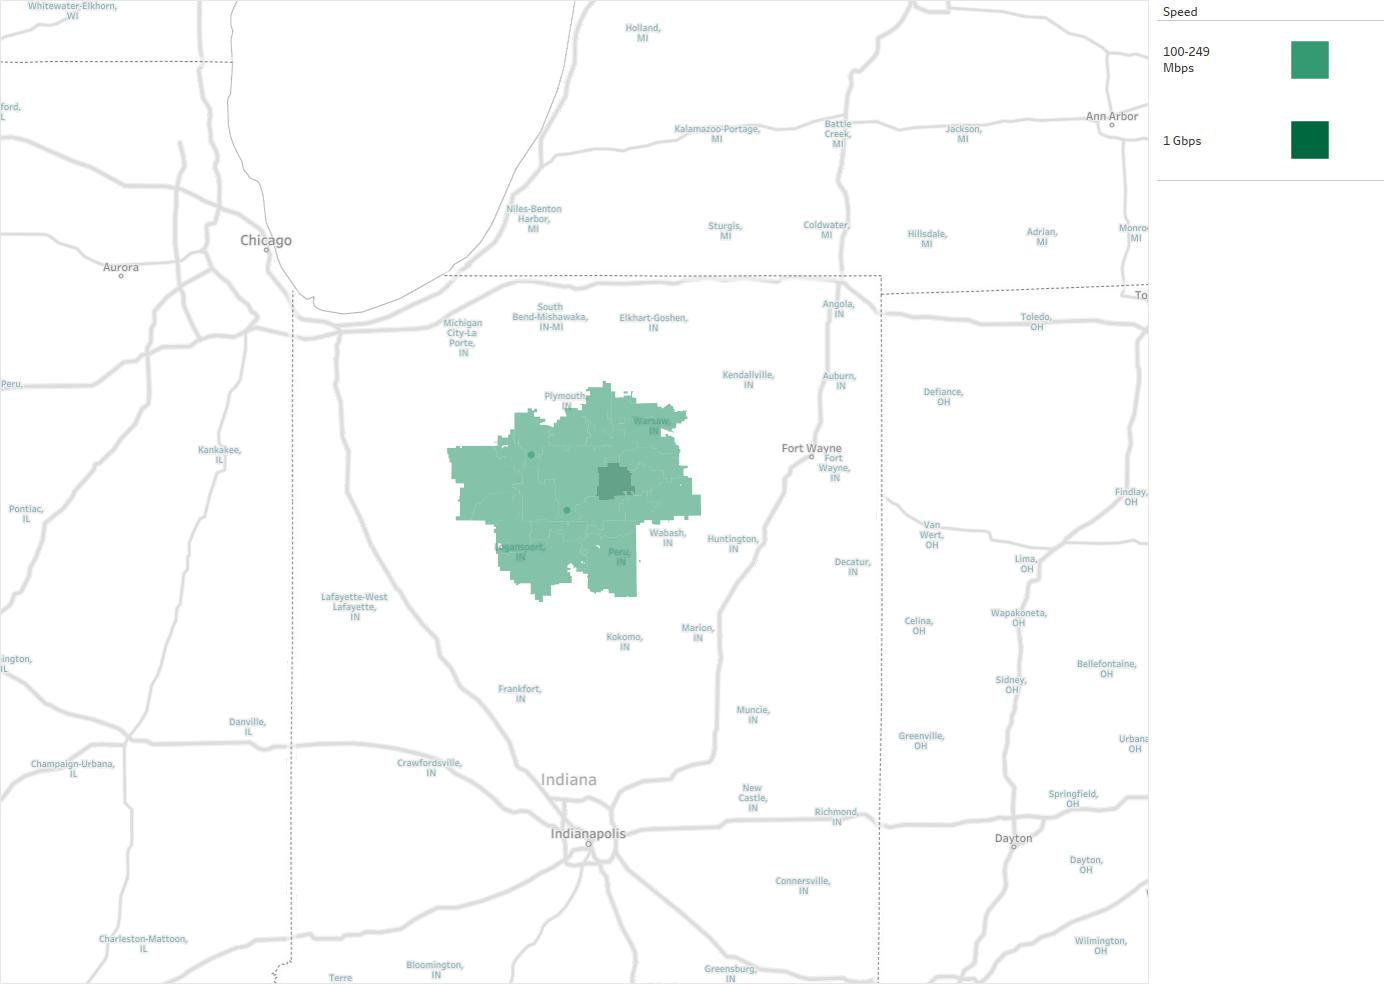 rtc communications corp availability areas  u0026 coverage map